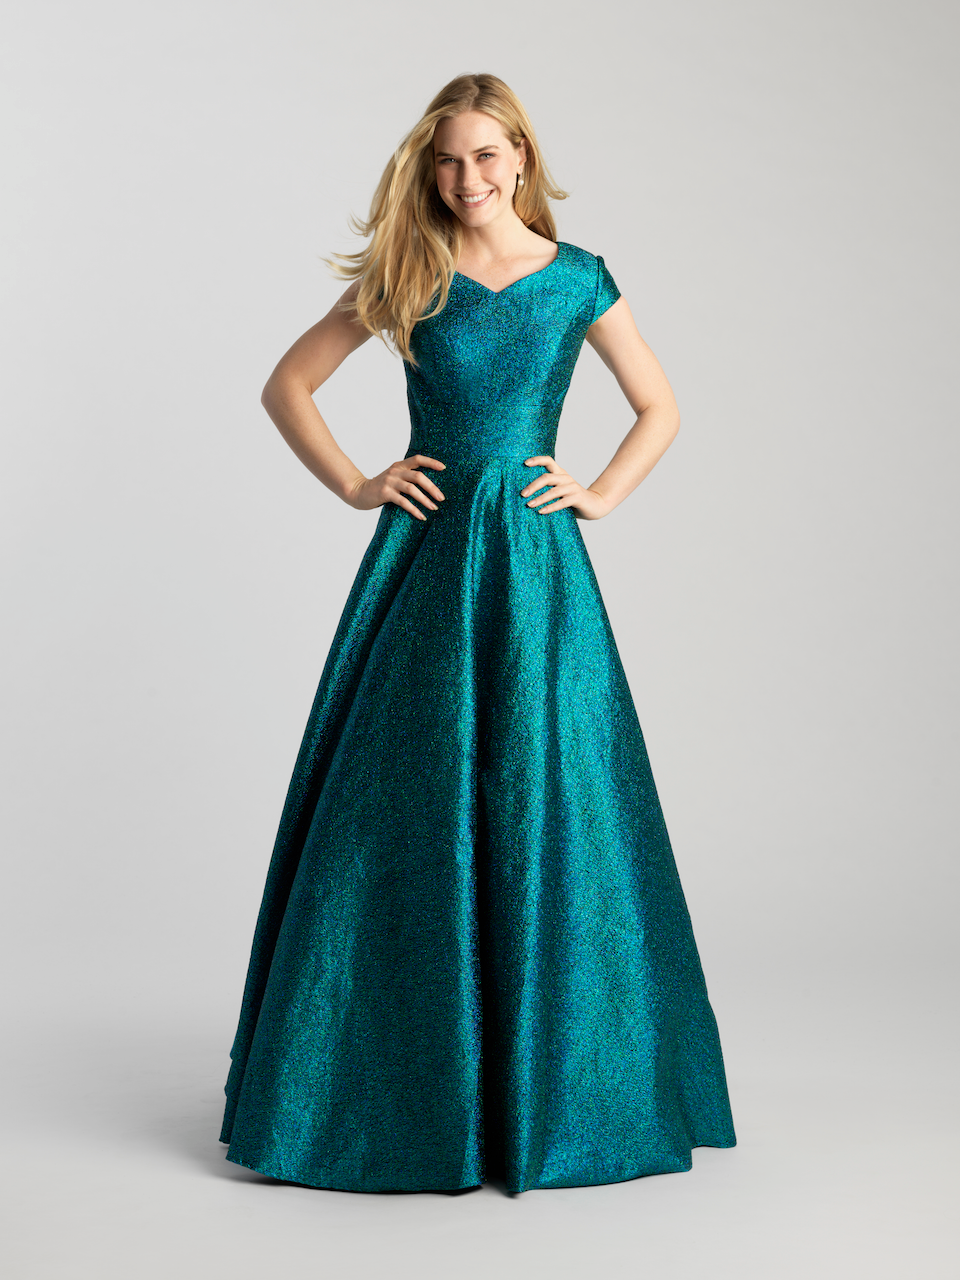 MJ 20-507M Green sparkle Modest Prom Dress Ball Gown for plus size LDS formal